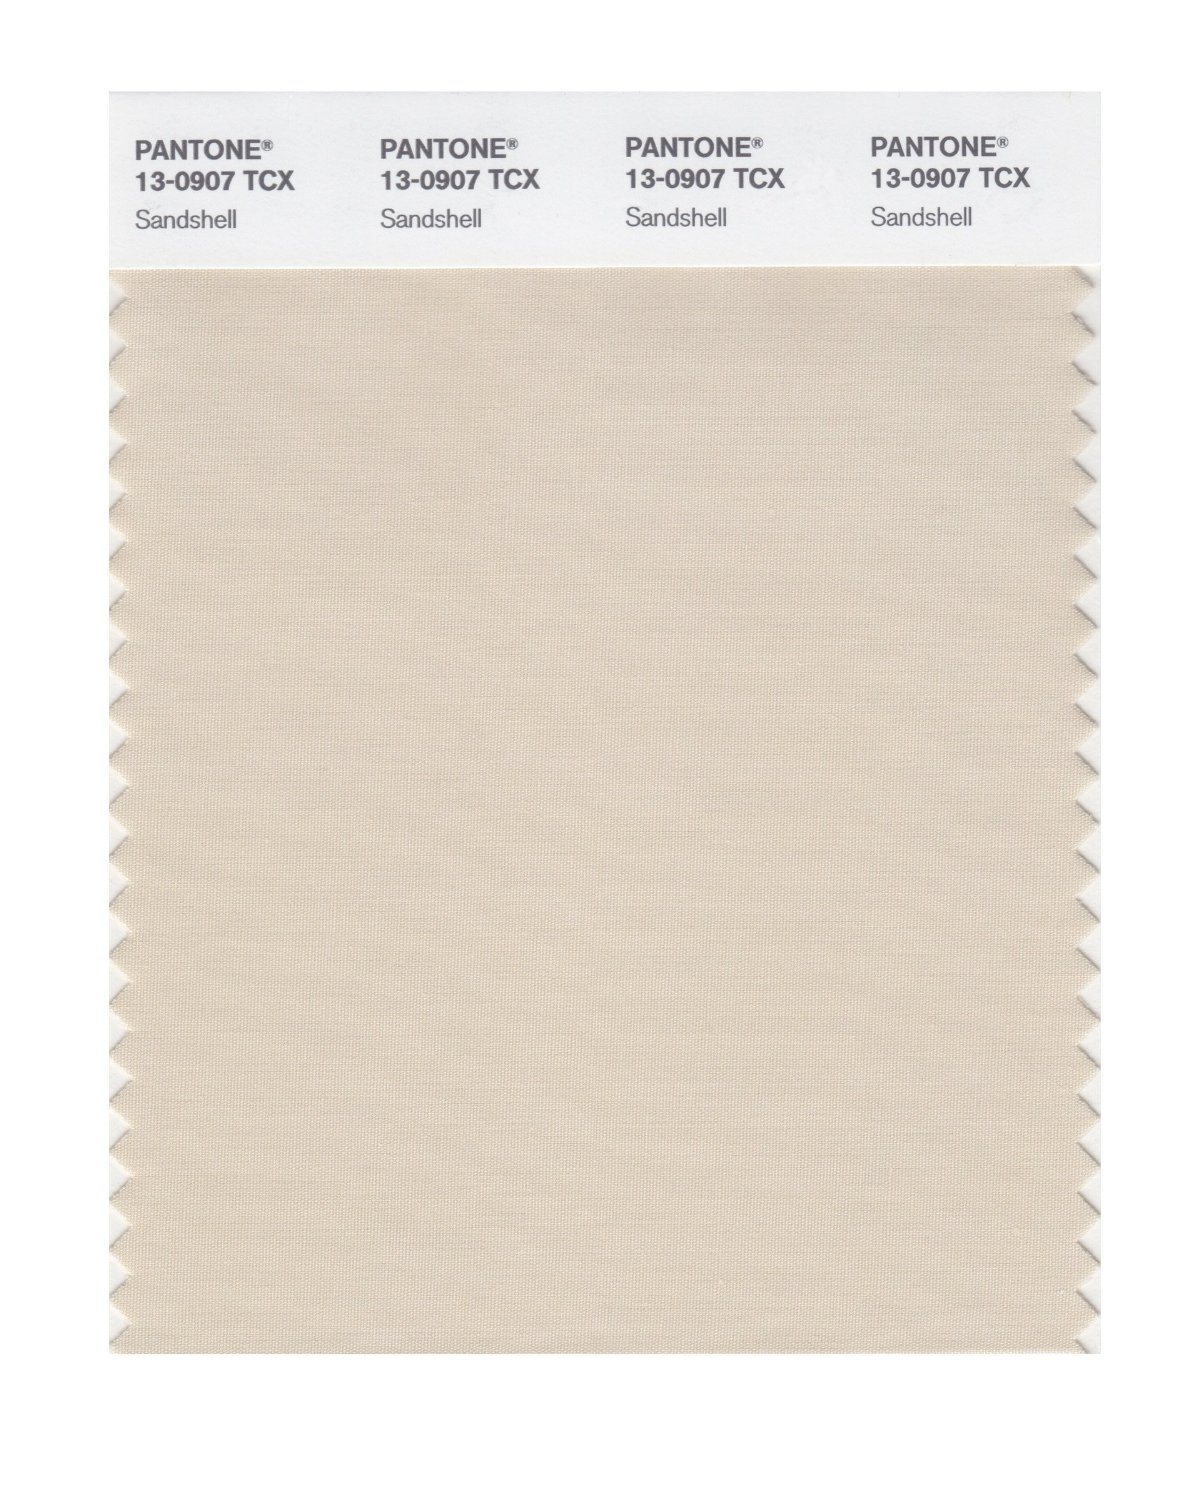 Pantone Smart Swatch 13-0907 Sandshell